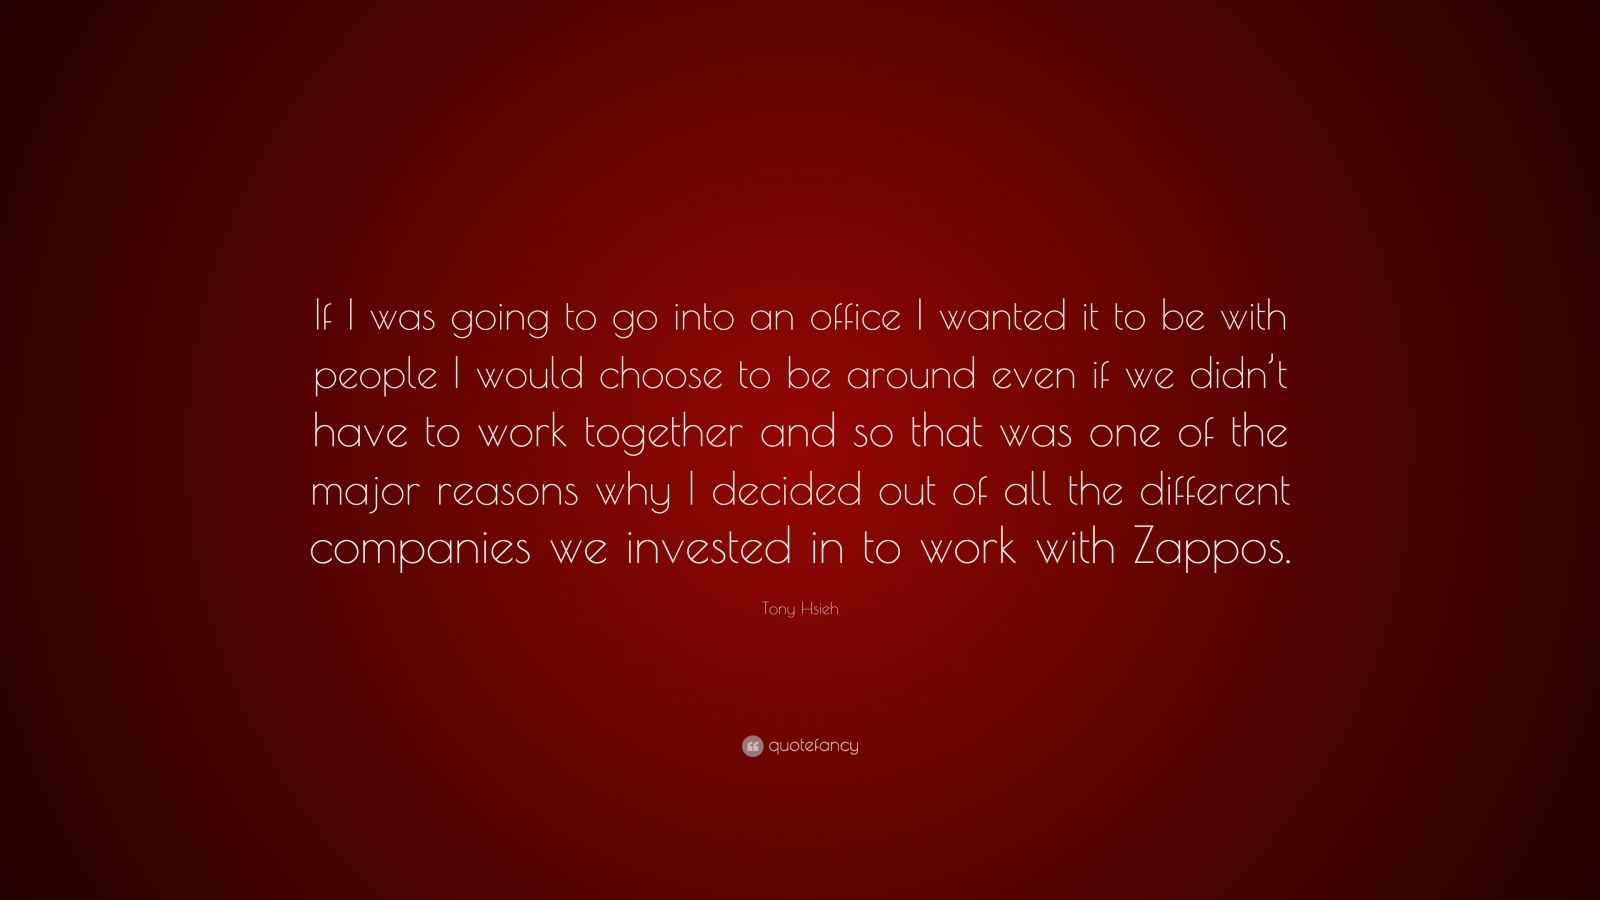 "Tony Hsieh Quote: ""If I was going to go into an office I wanted it to be with people I would choose to be around even if we didn't have to work together and so that was one of the major reasons why I decided out of all the different companies we invested in to work with Zappos."""